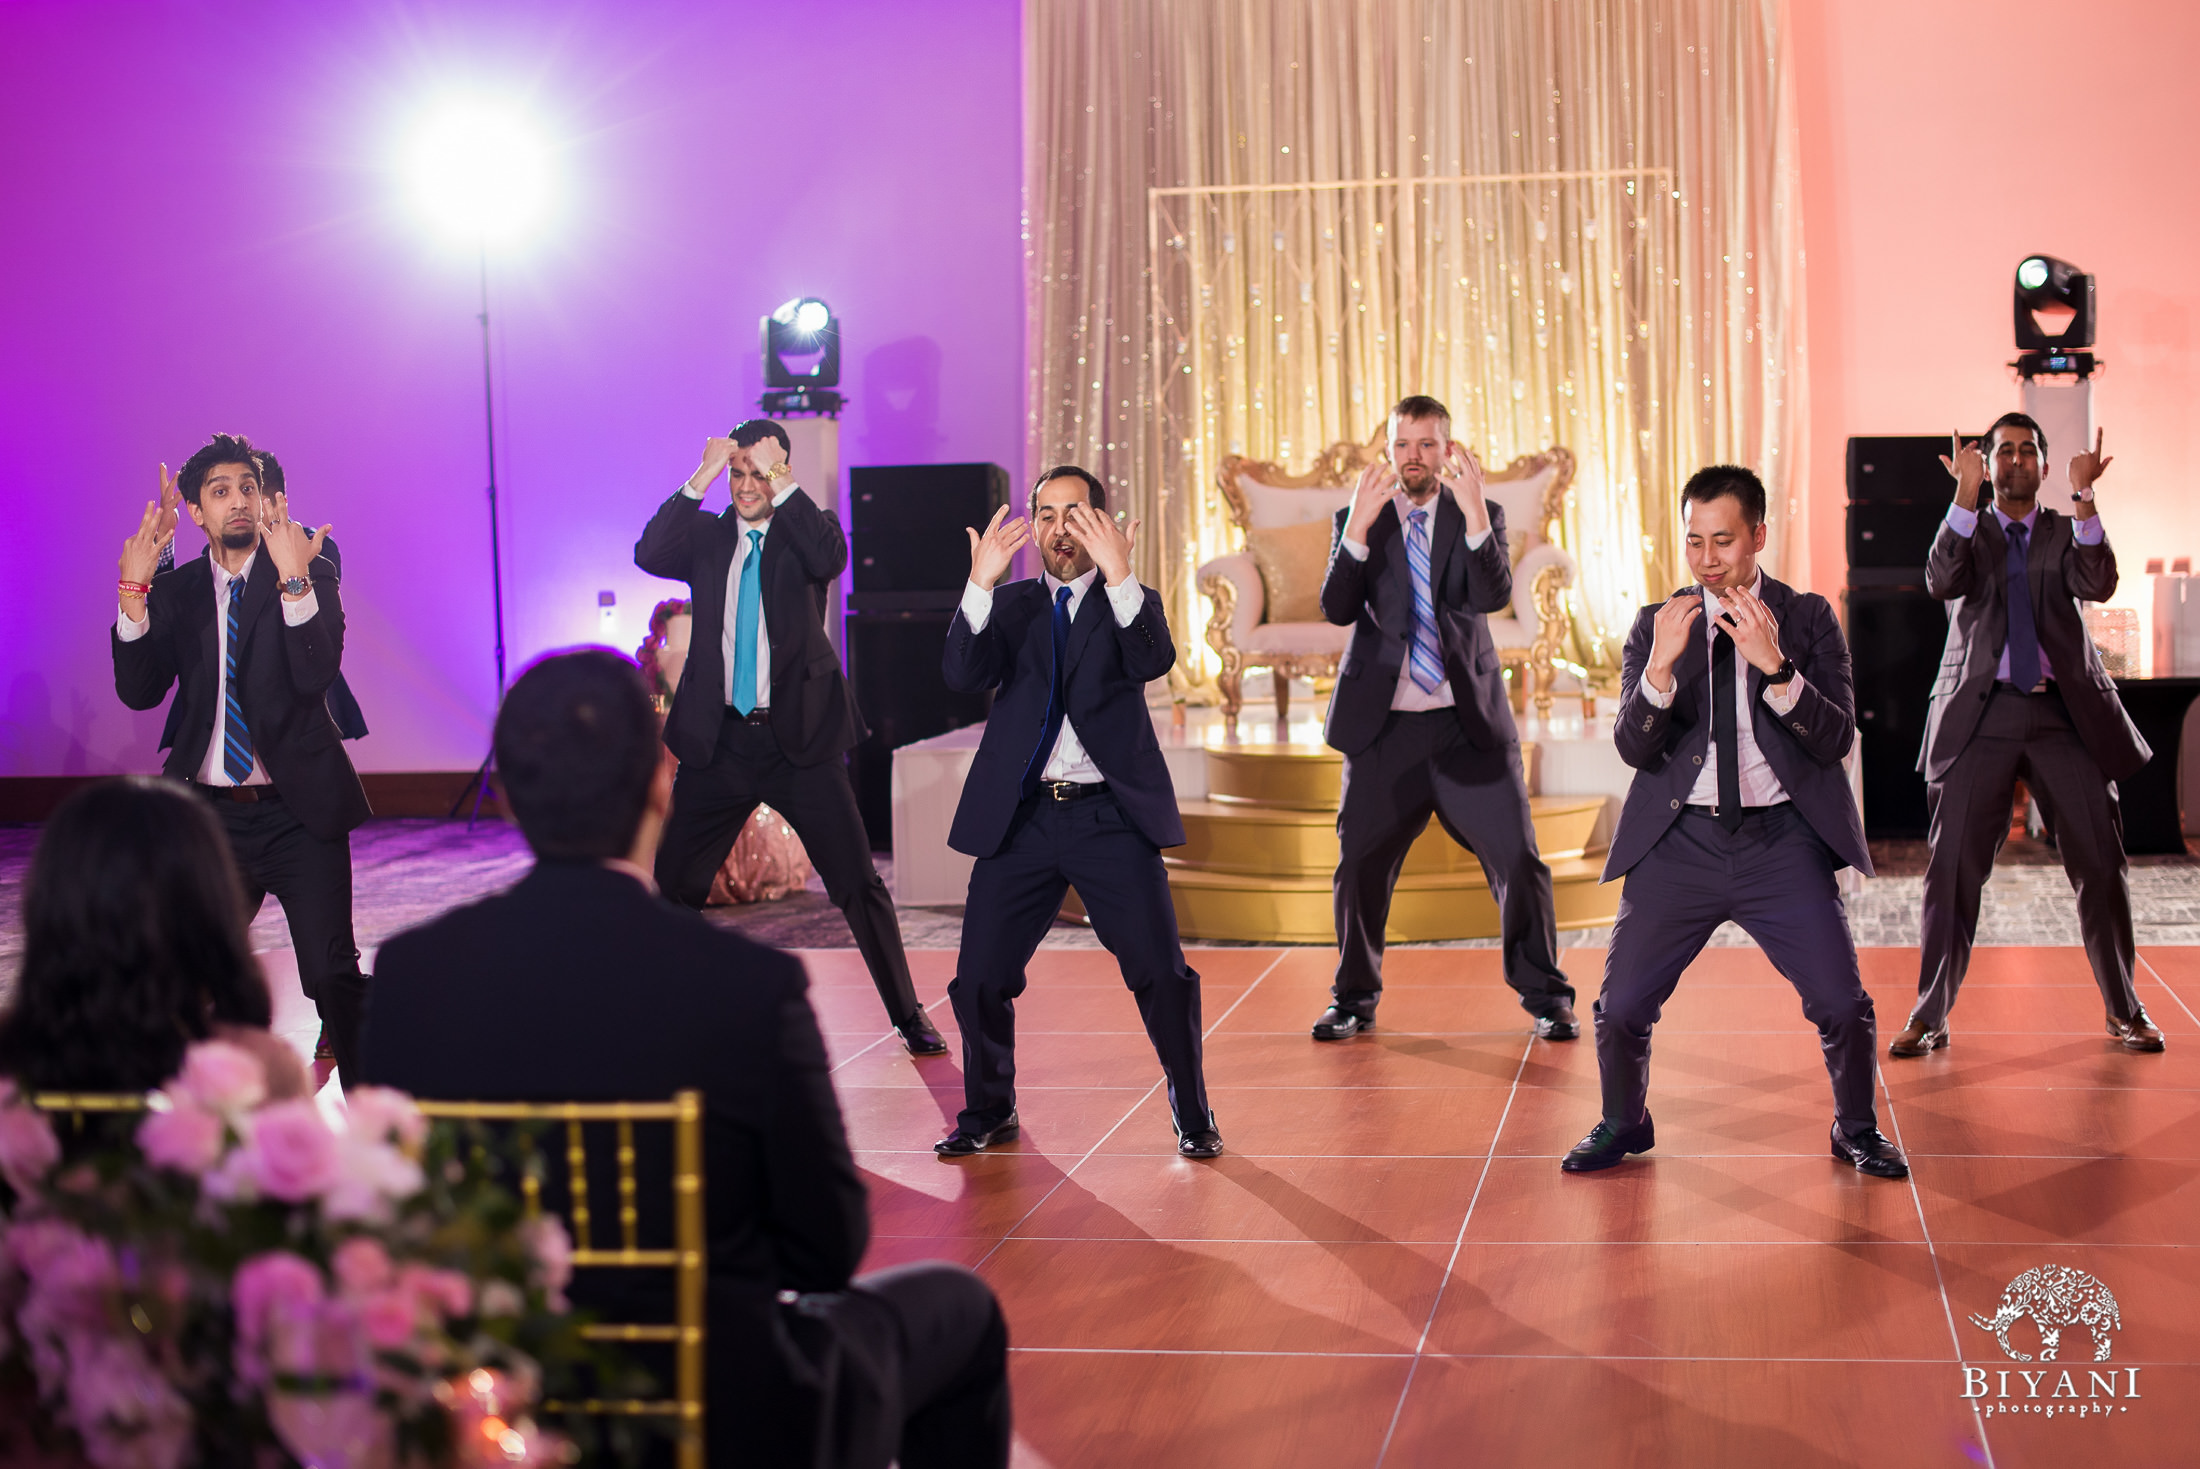 groomsmen dancing choreography for the reception performance